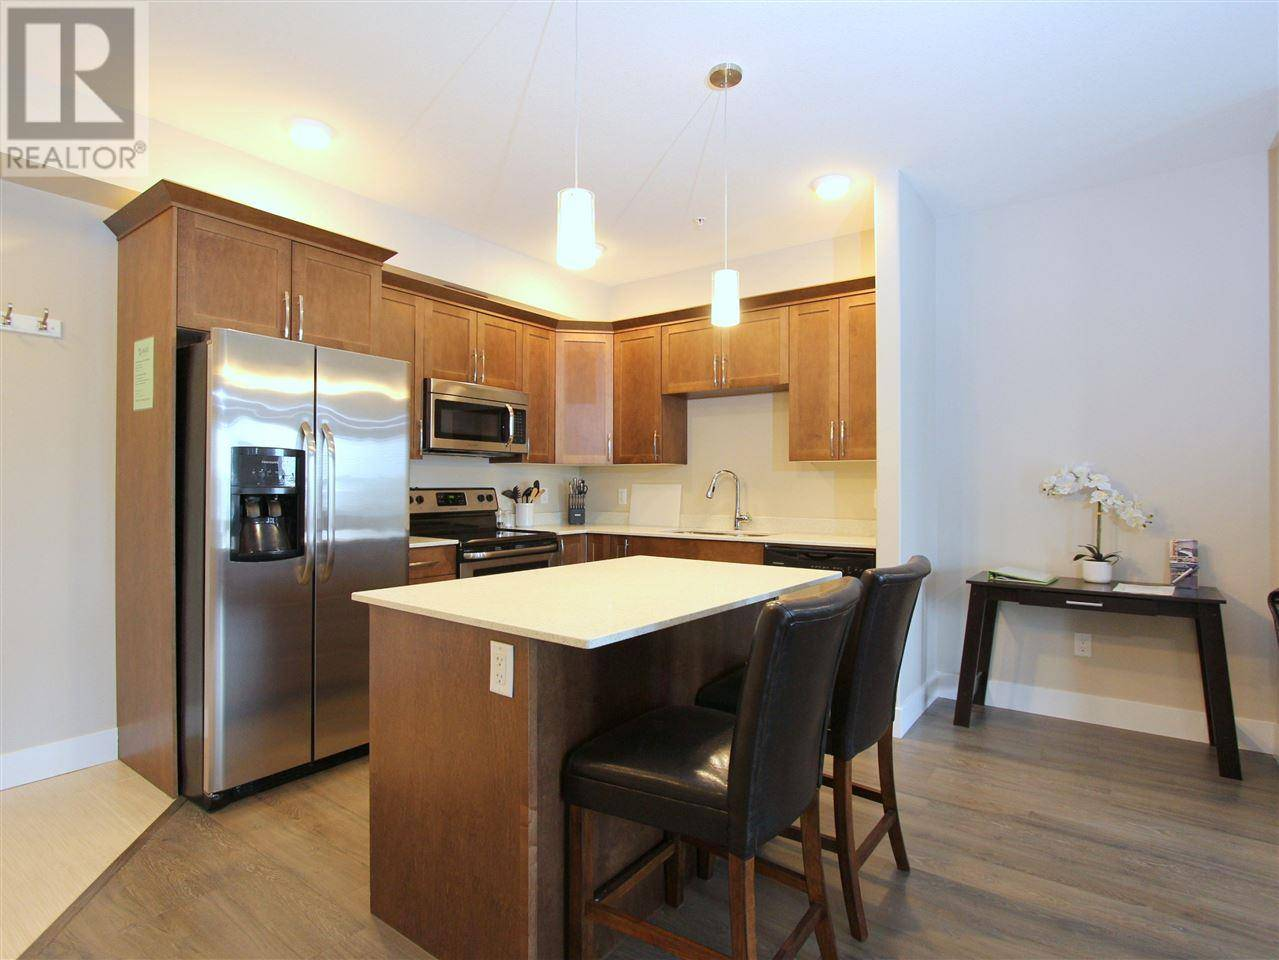 Condo for sale at 11205 105 Ave Unit 201 Fort St. John British Columbia - MLS: R2431146